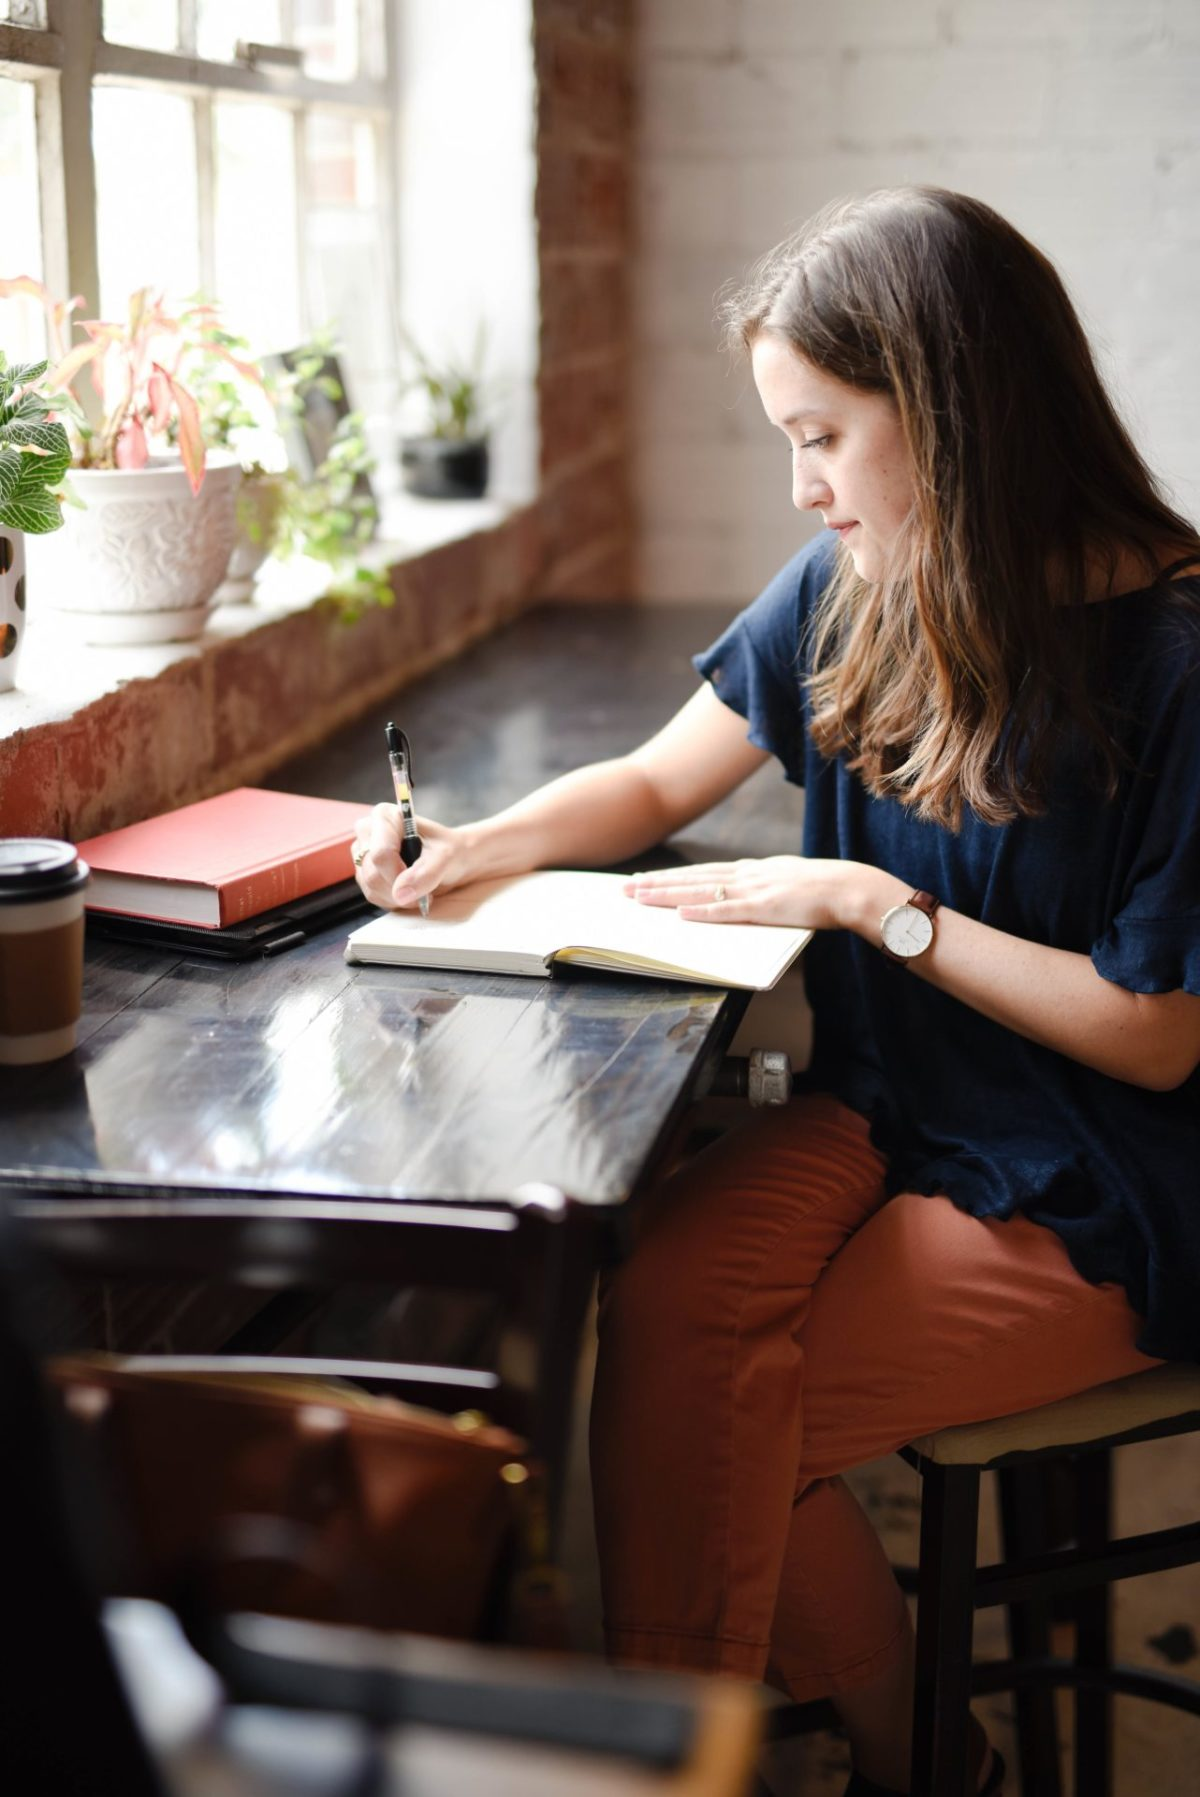 writer's block tips: create a consistent writing habit